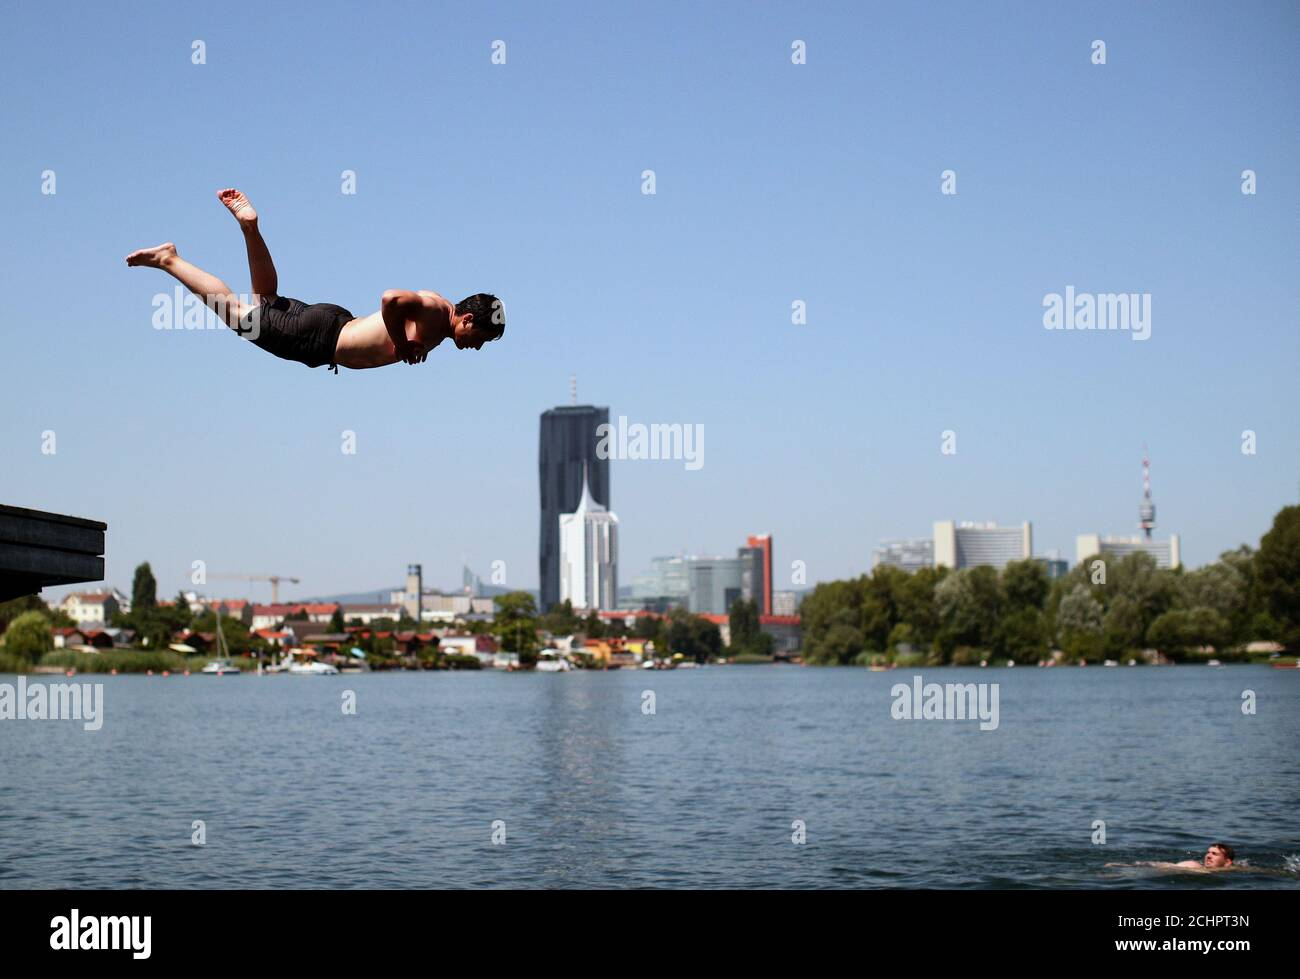 A Teenager Jumps Into Alte Donau An Abandoned Meander Of River Danube During A Heat Wave In Vienna Austria July 25 2019 Reuters Lisi Niesner Stock Photo Alamy